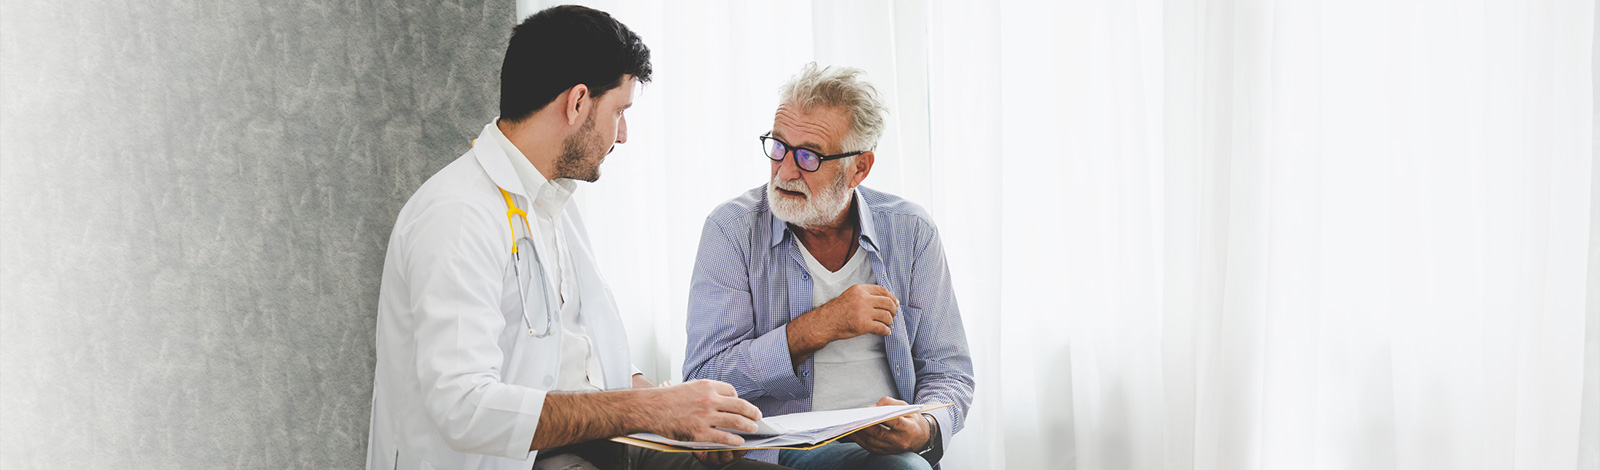 A doctor going over paperwork with a patient.